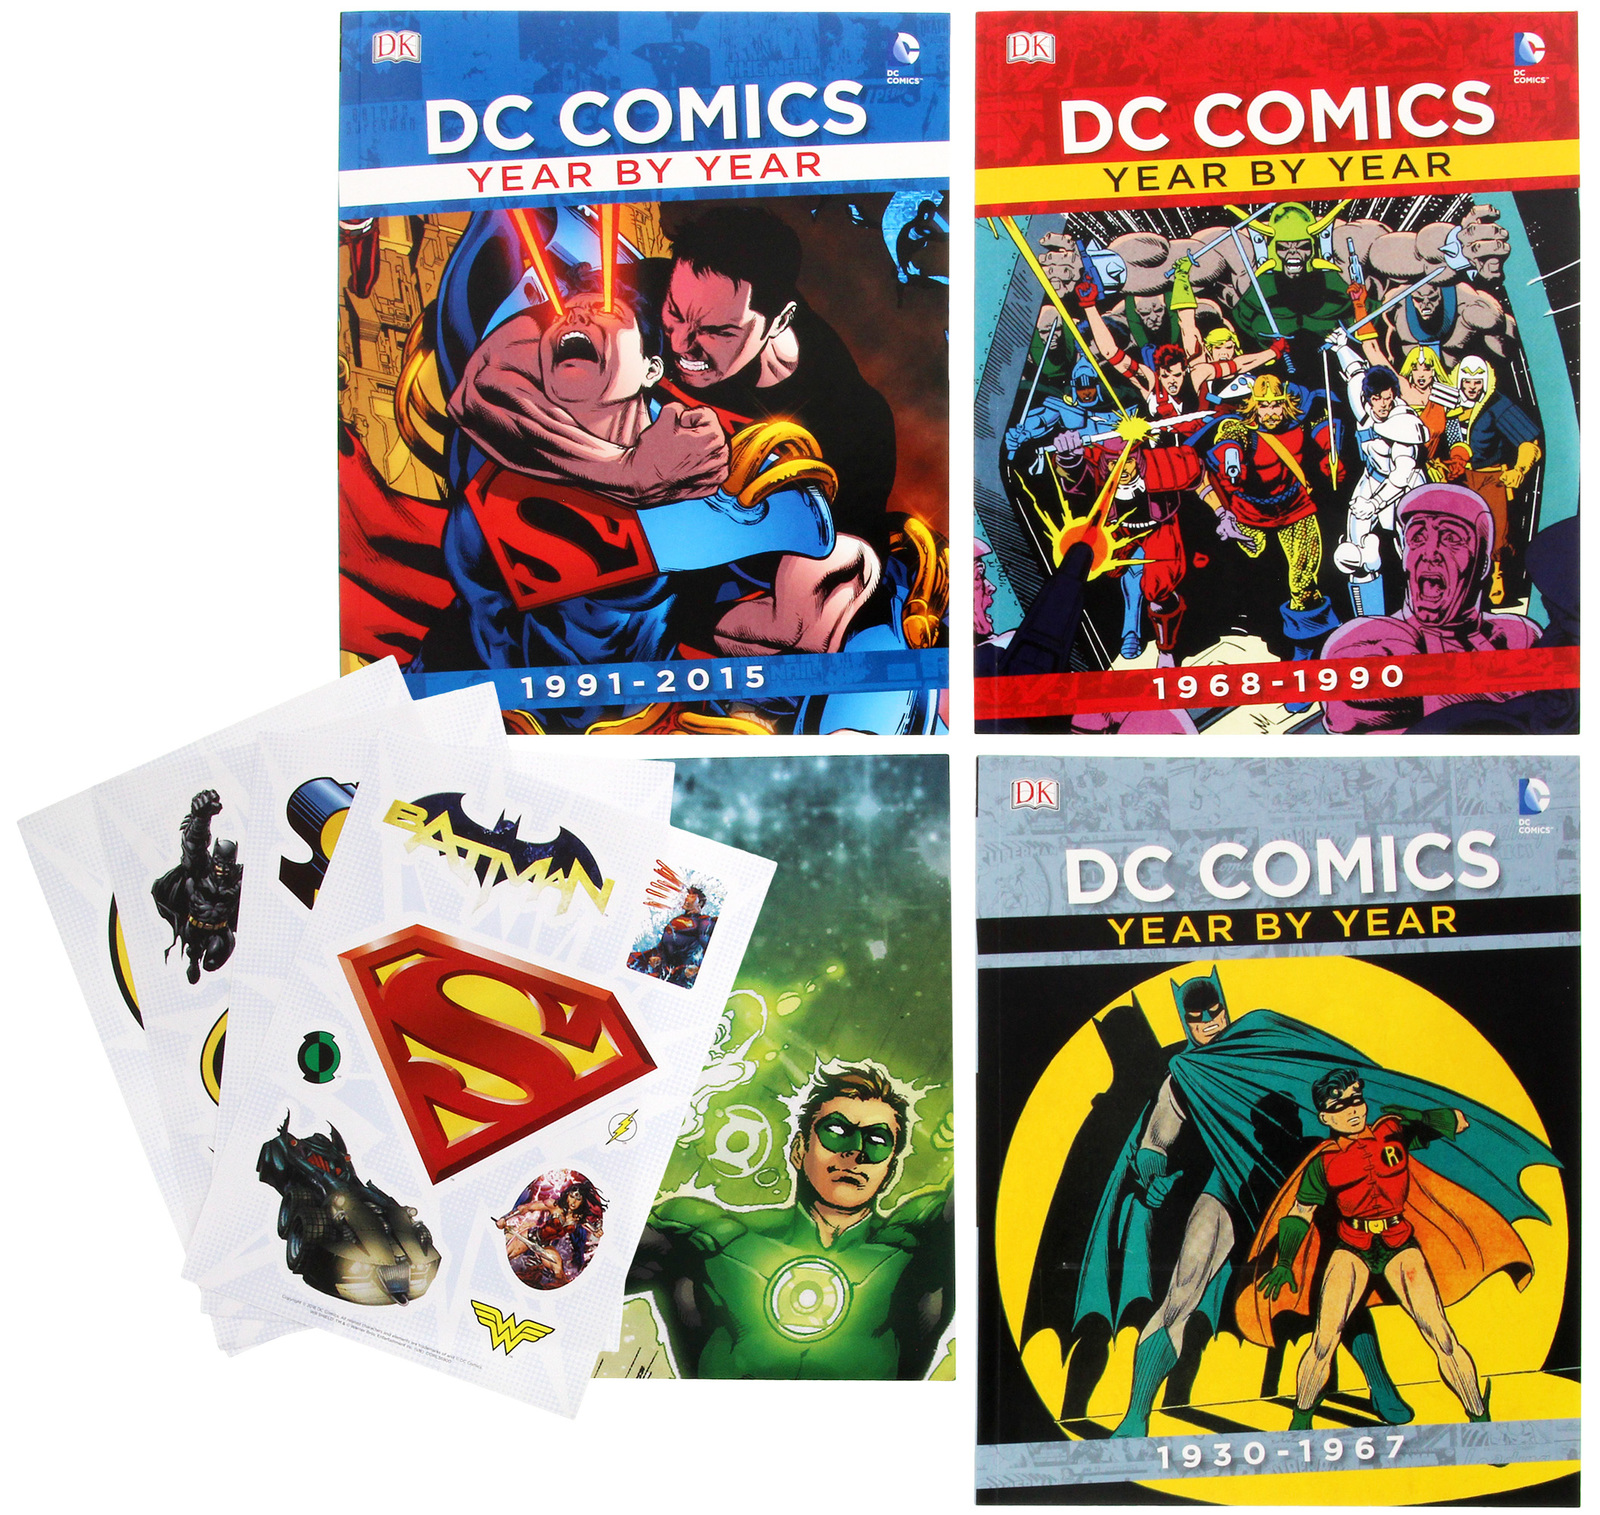 Free Comic Book Day Ultimate Comics: The Ultimate DC Comics Super Hero Collection